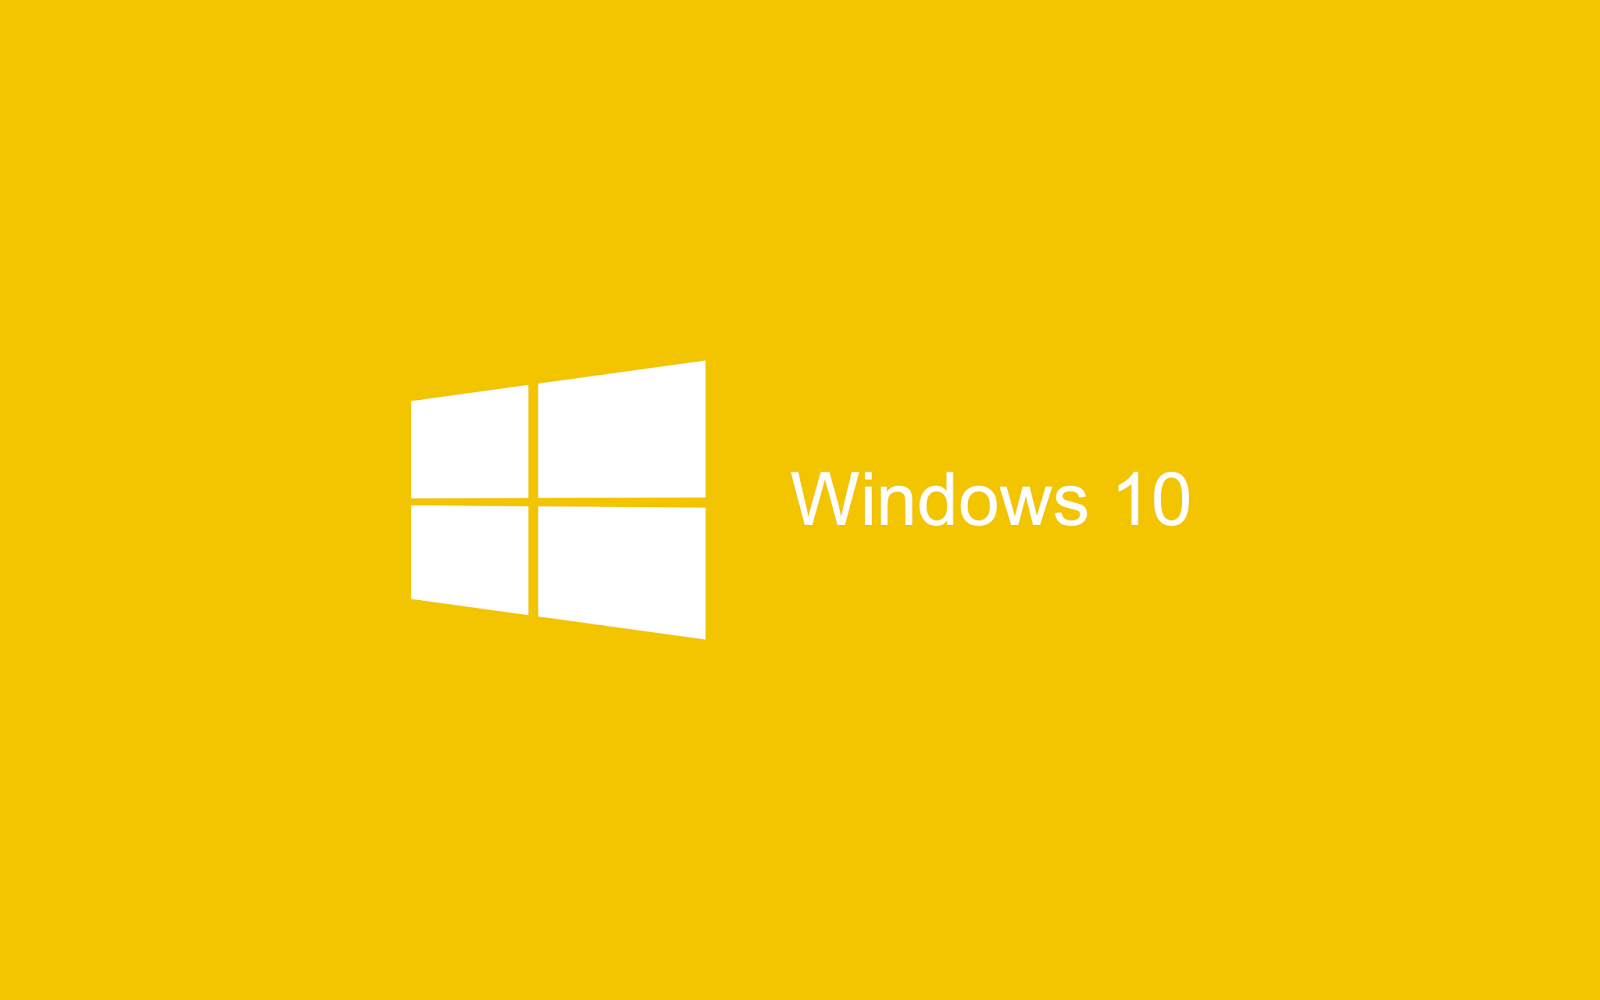 Windows 10 Wallpapers Pack 2016 - No: 1